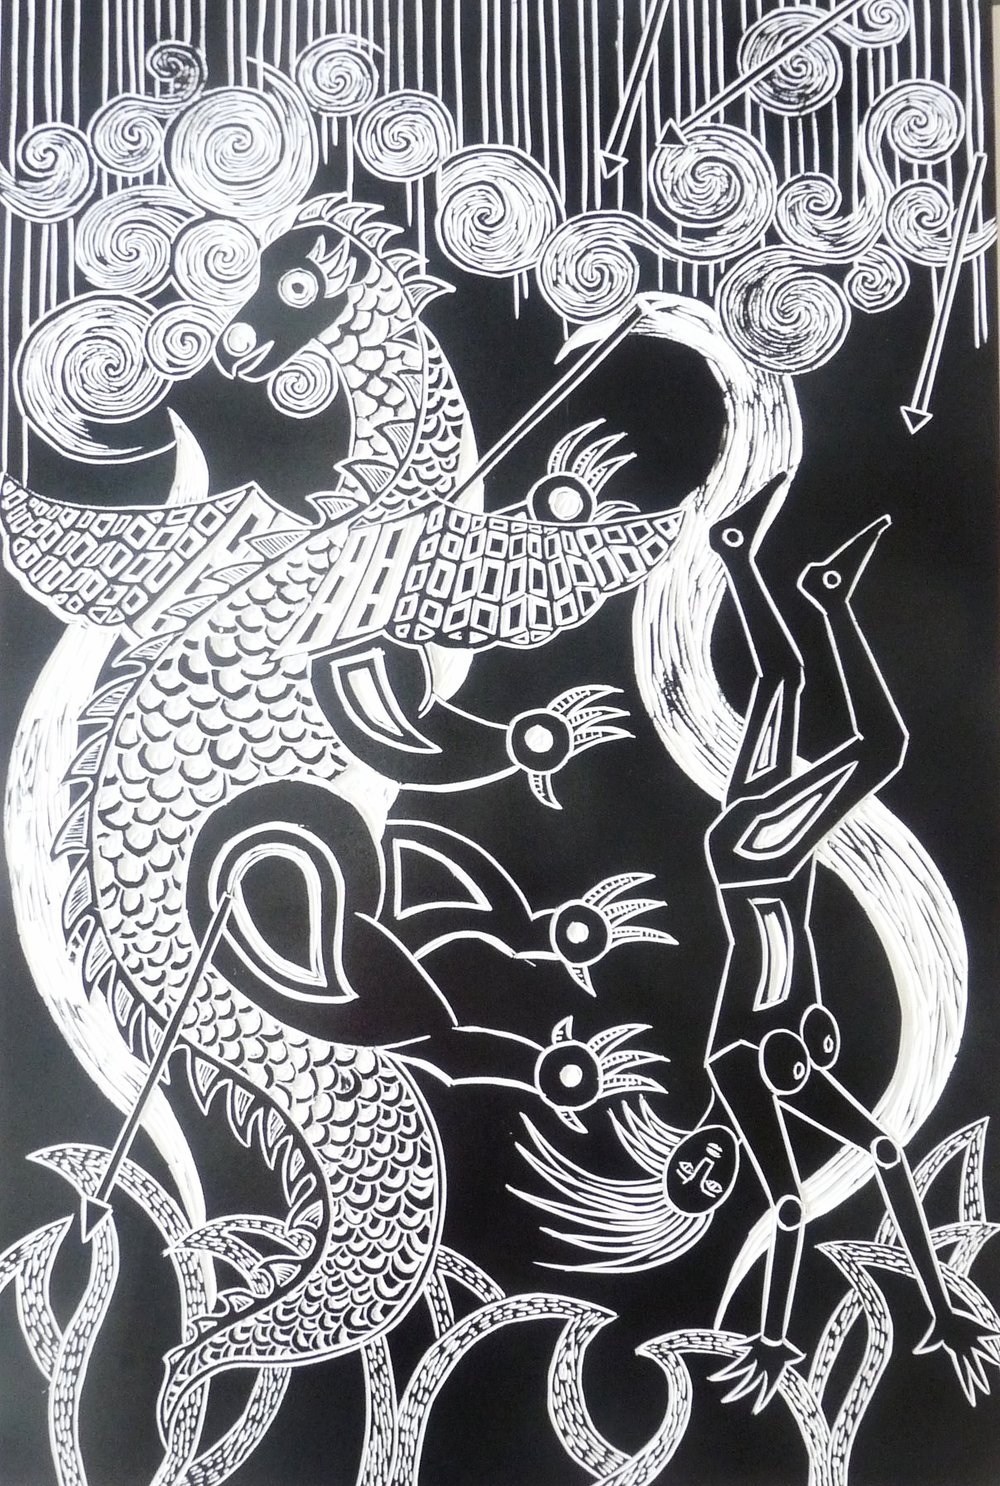 "I fall with the dragon, linocut print 22"" x 33"""